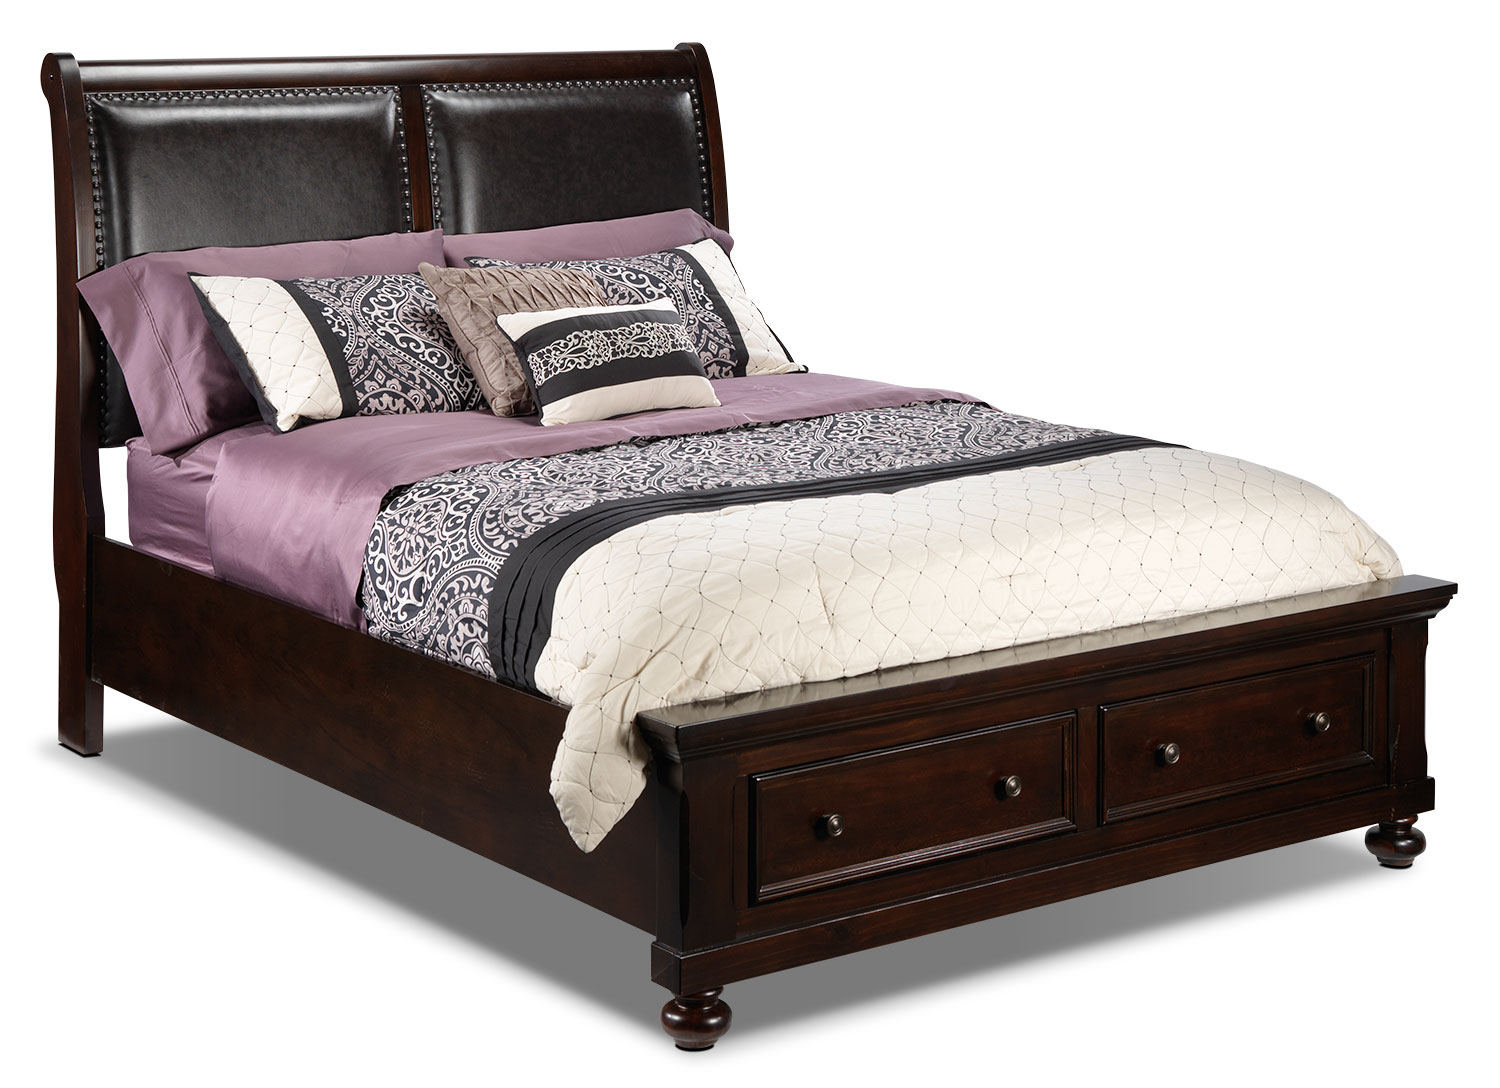 Chester King Storage Bed - Cherry